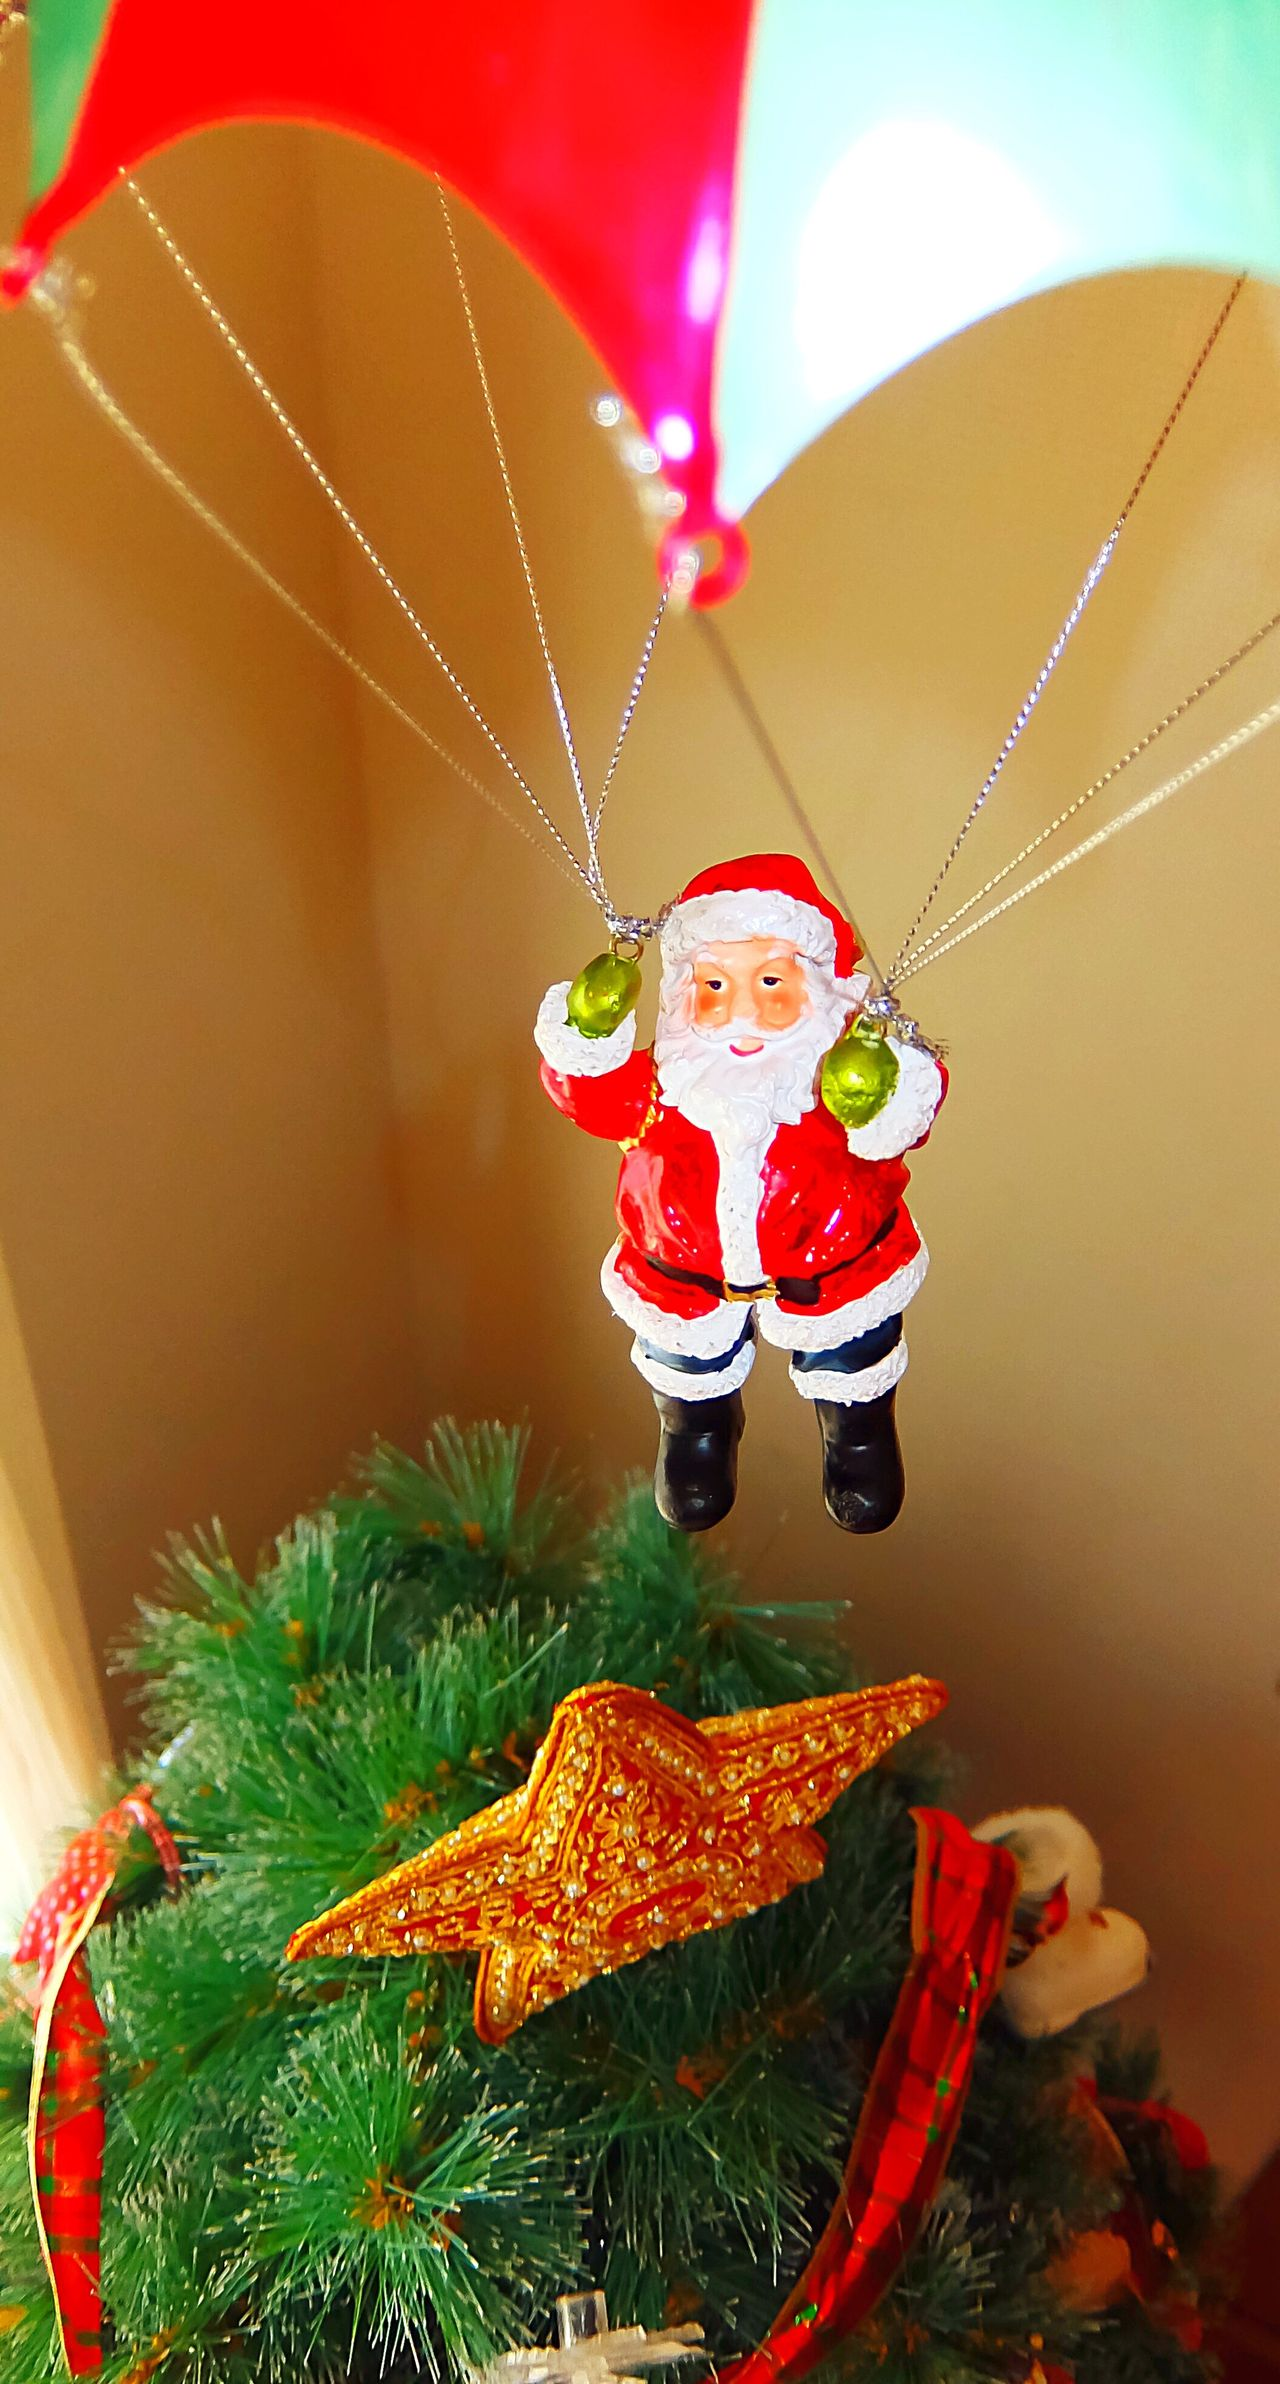 Santa Claus is comino to town Christmas Tree Christmas Decorations Christmas Around The World Xmas Xmas Decorations Xmas Tree Santa Santa Claus Holidays Holiday